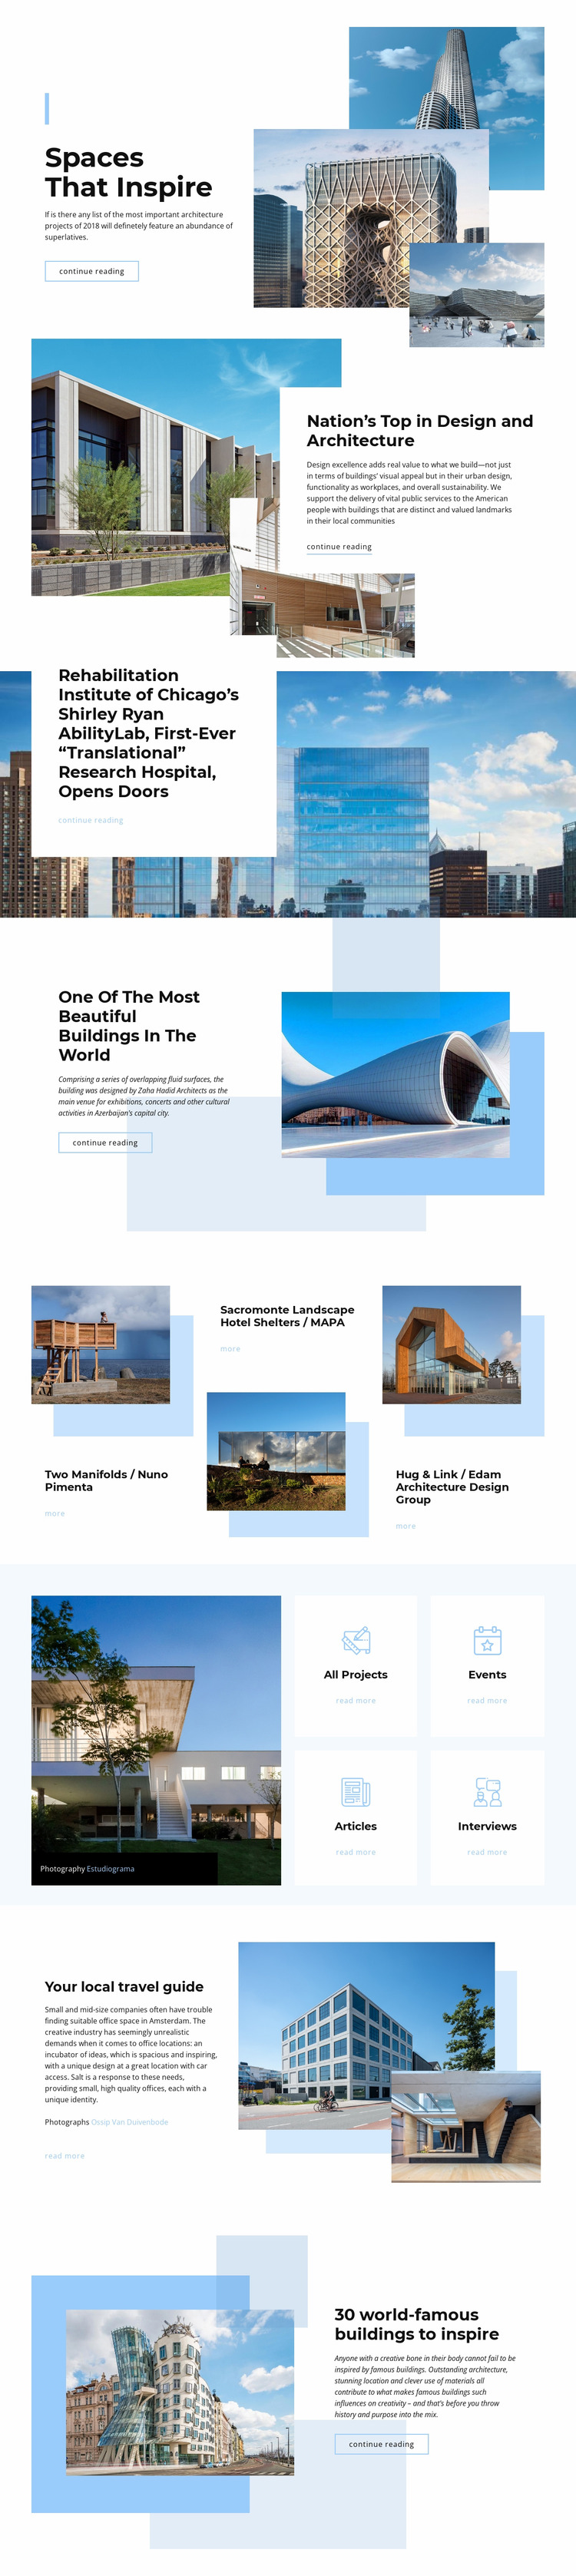 Spaces That Inspire Html Website Builder